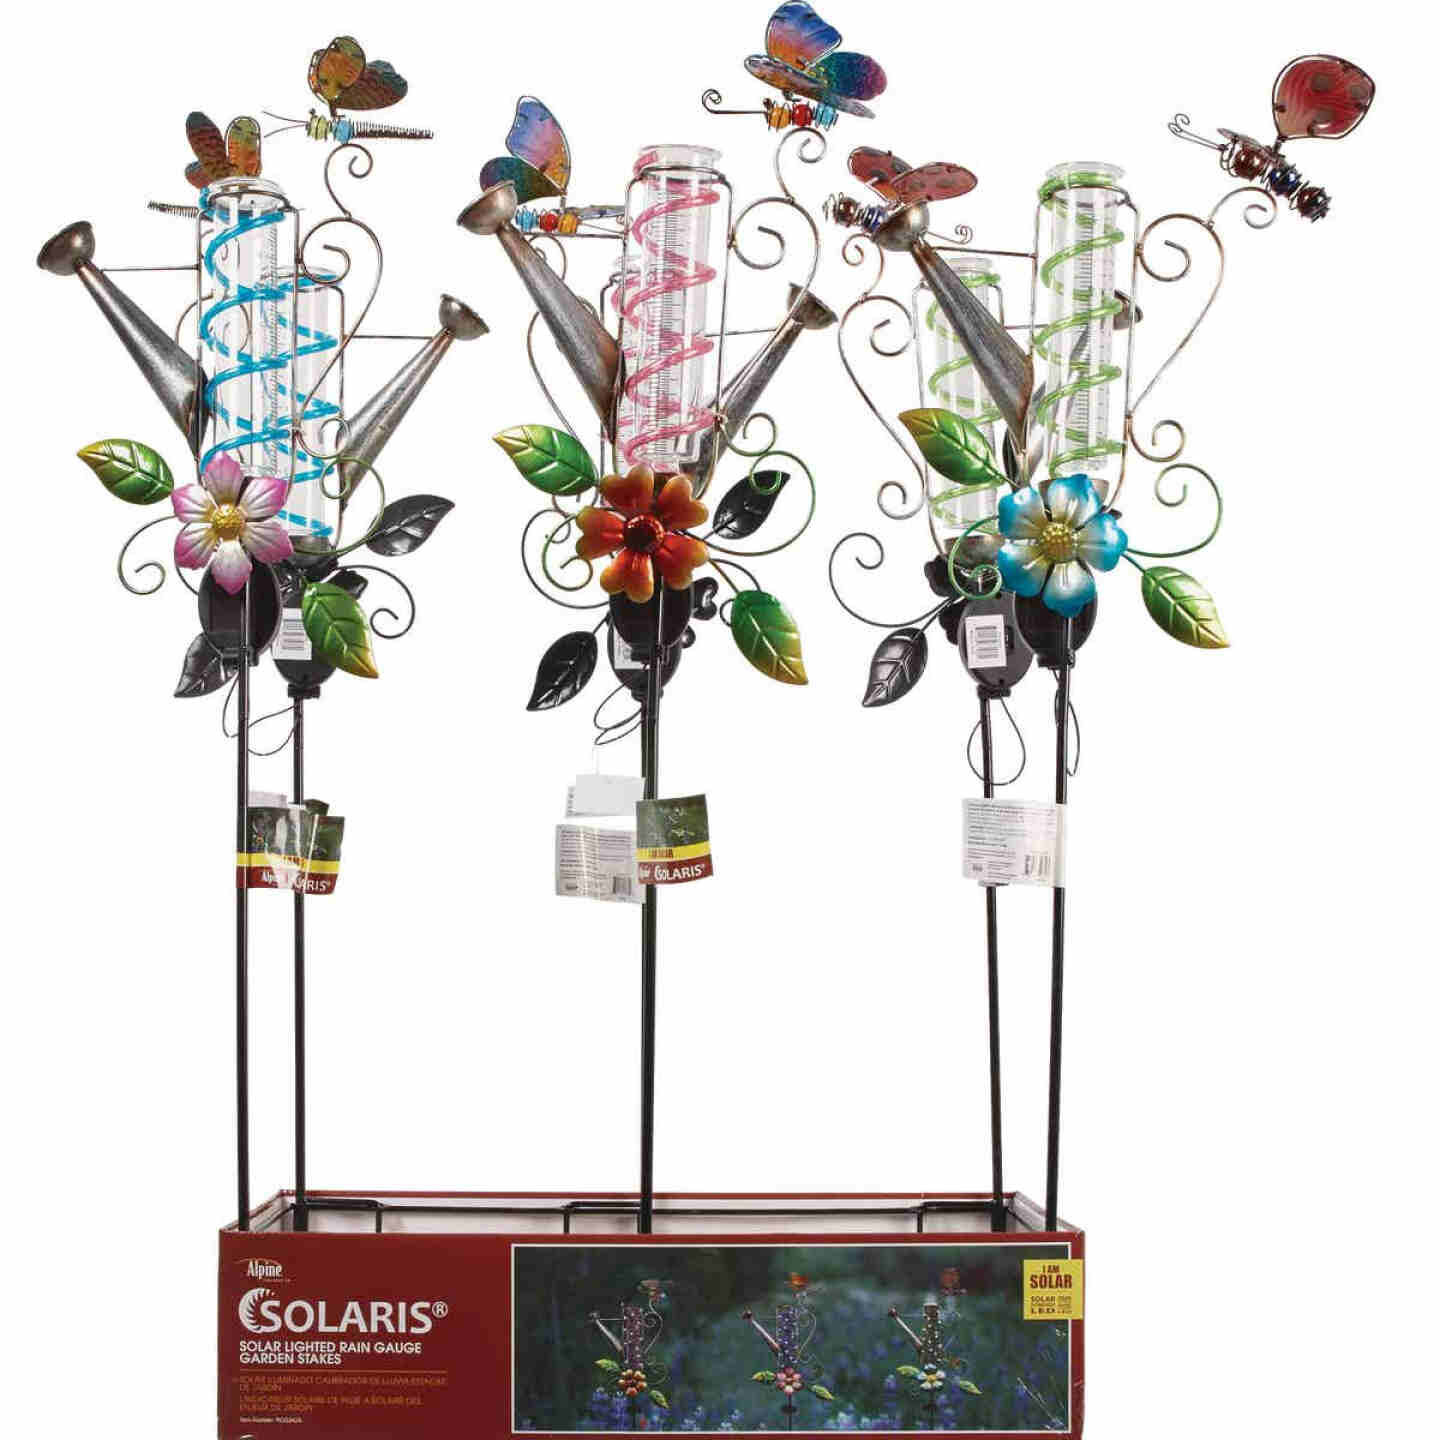 Alpine Solaris Metal, Plastic, & Glass Rain Gauge 39 In. H. Solar Stake Light Image 3